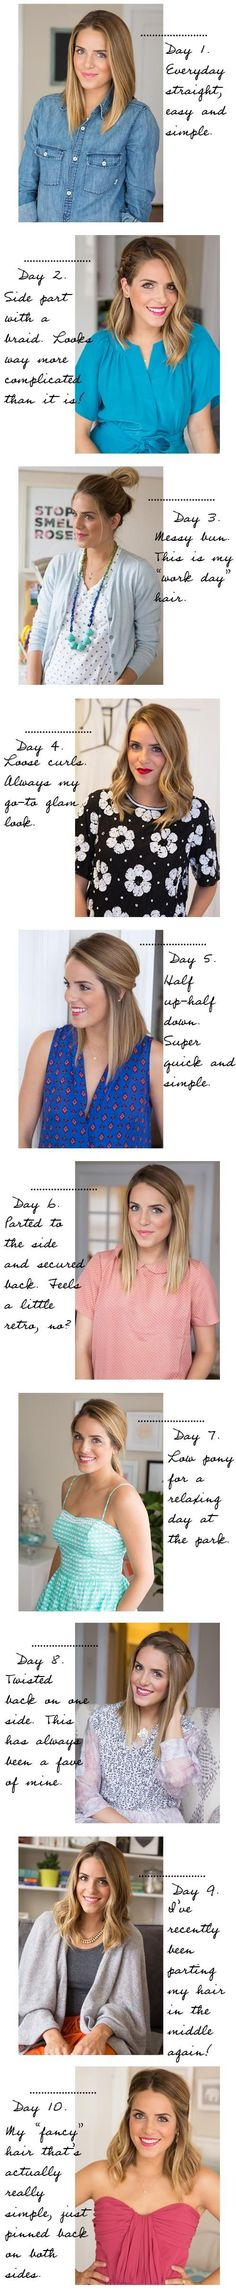 "Shoulder Length Hair Styles (for my new ""do"")"